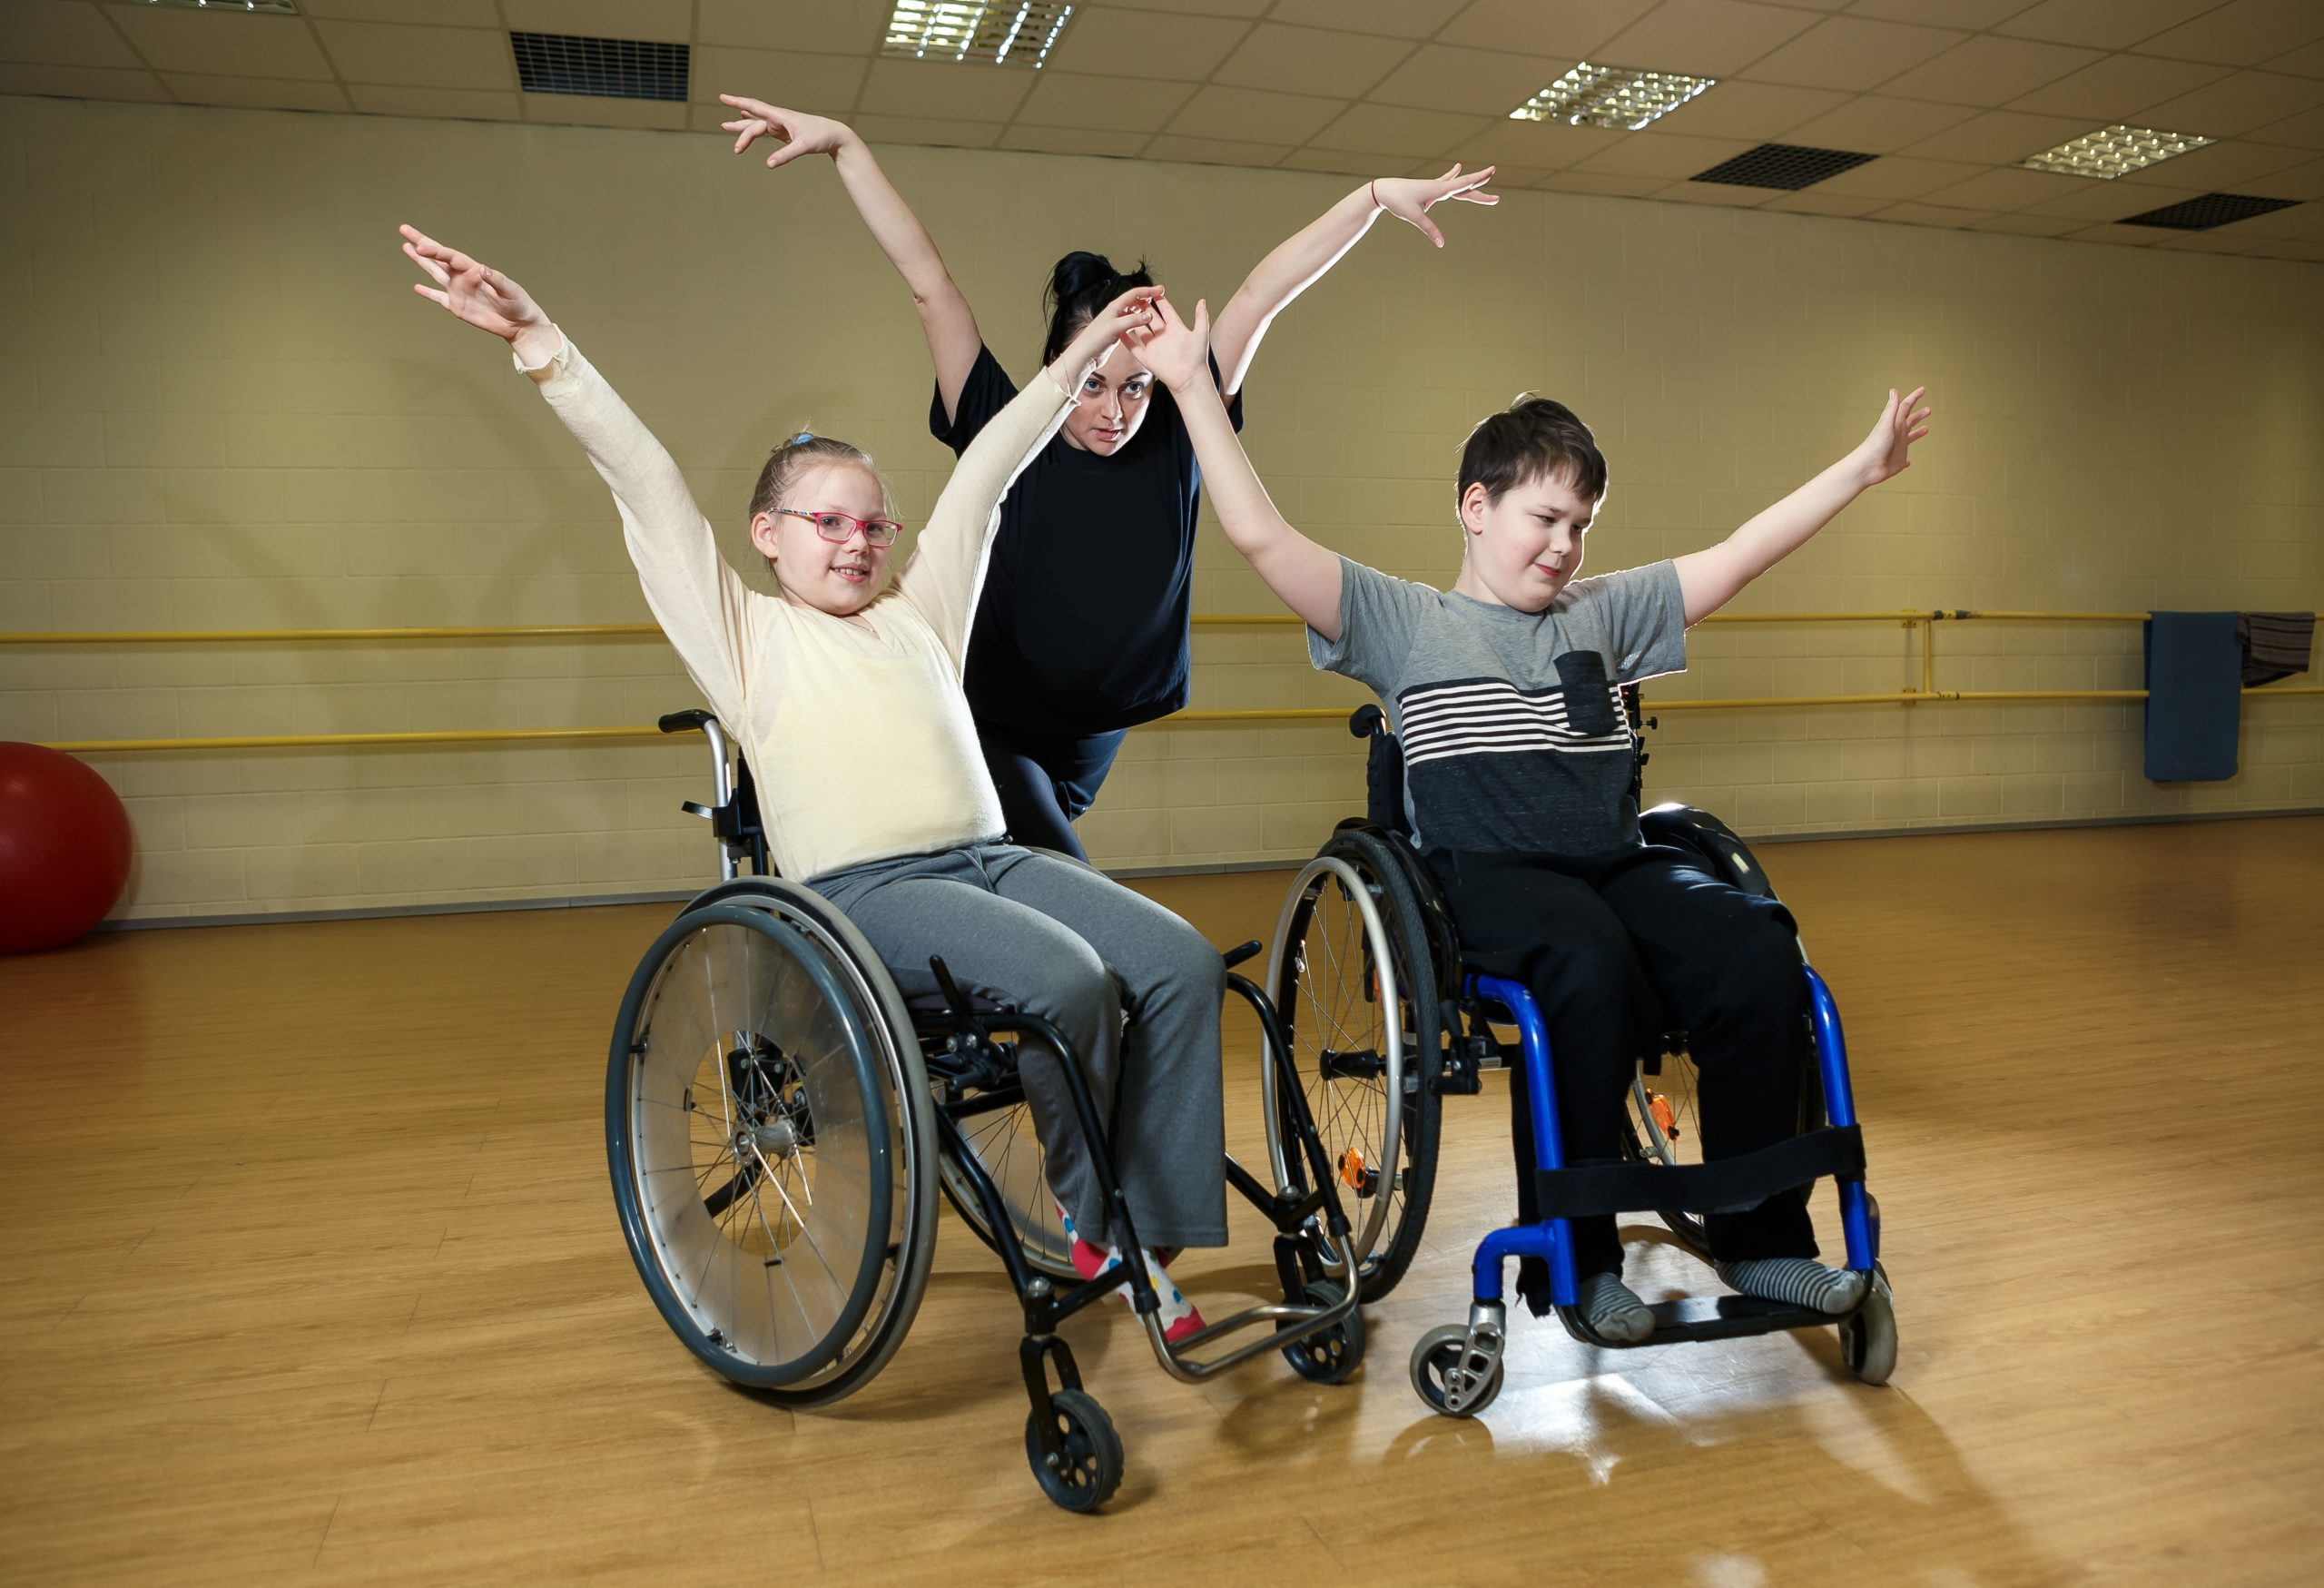 Two People in Wheelchairs Exercising in a Dance Studio